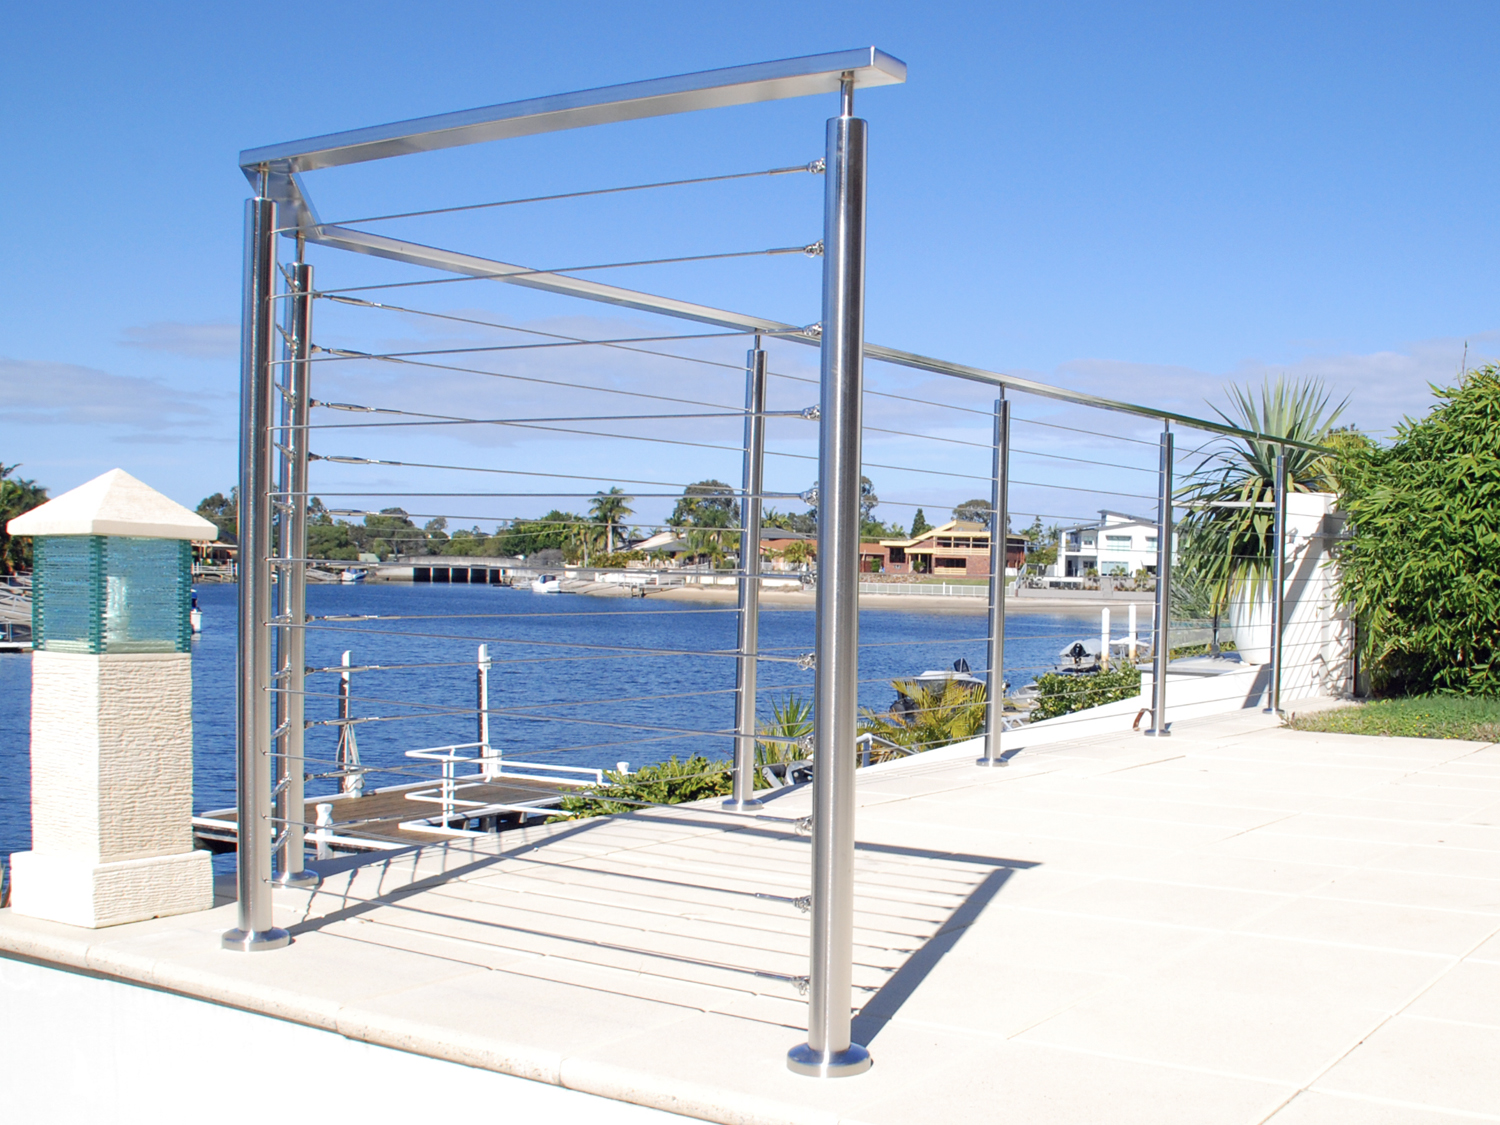 stainless steel wire balustrade australia